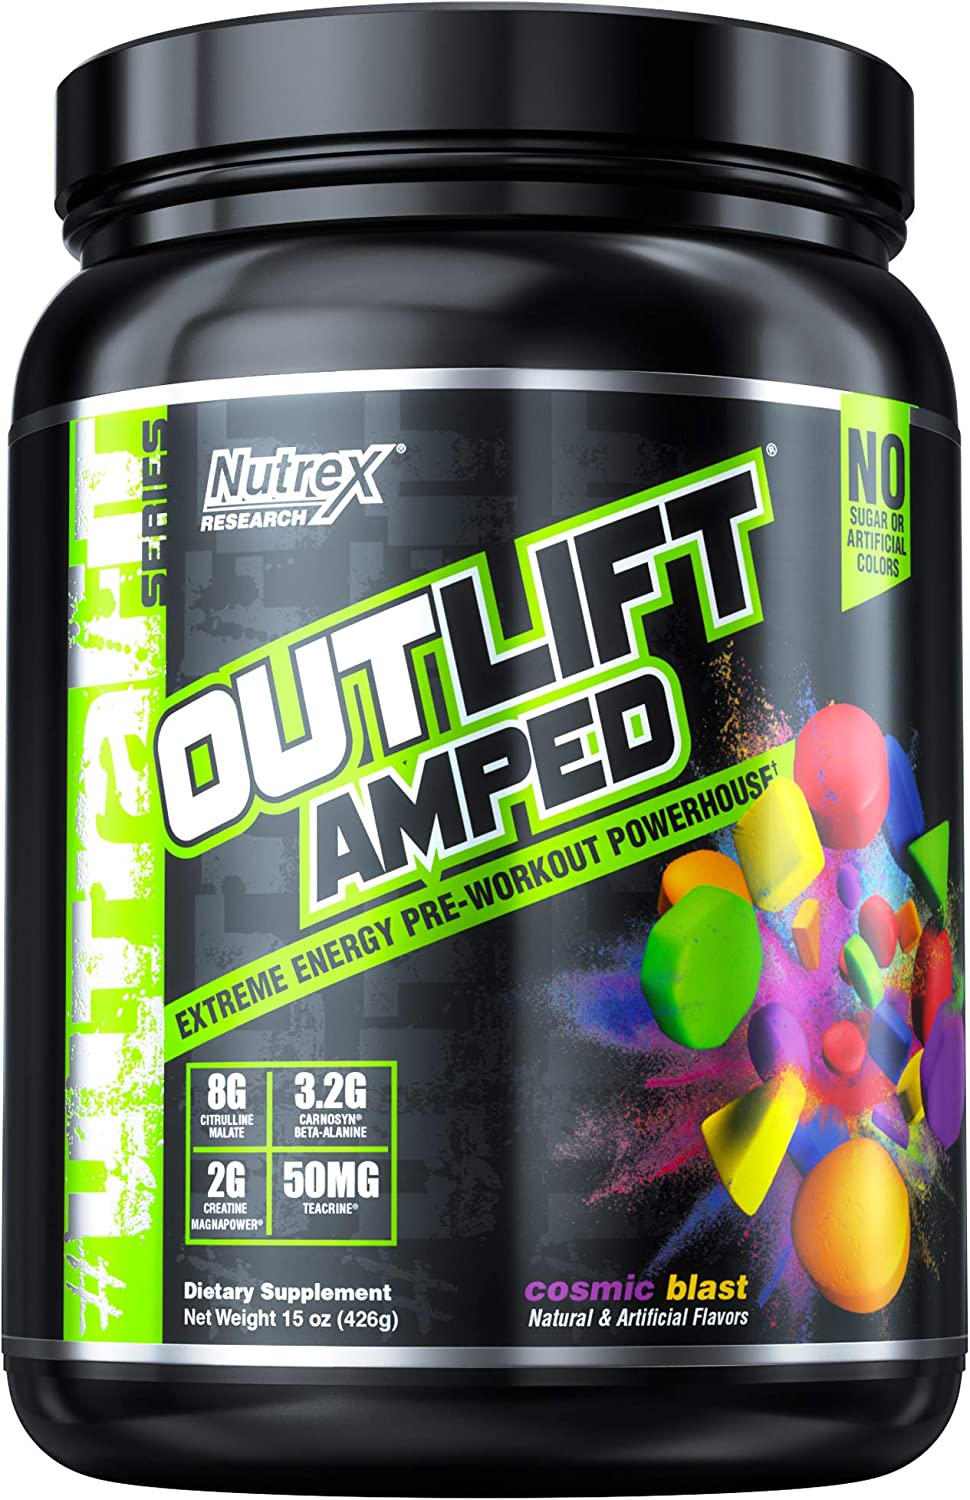 Nutrex Research Outlift Amped Premium Pre-Workout Focus Energy, Citrulline, Teacrine, Betaine, Creatine, Beta-Alanine Cosmic Blast 20 Servings